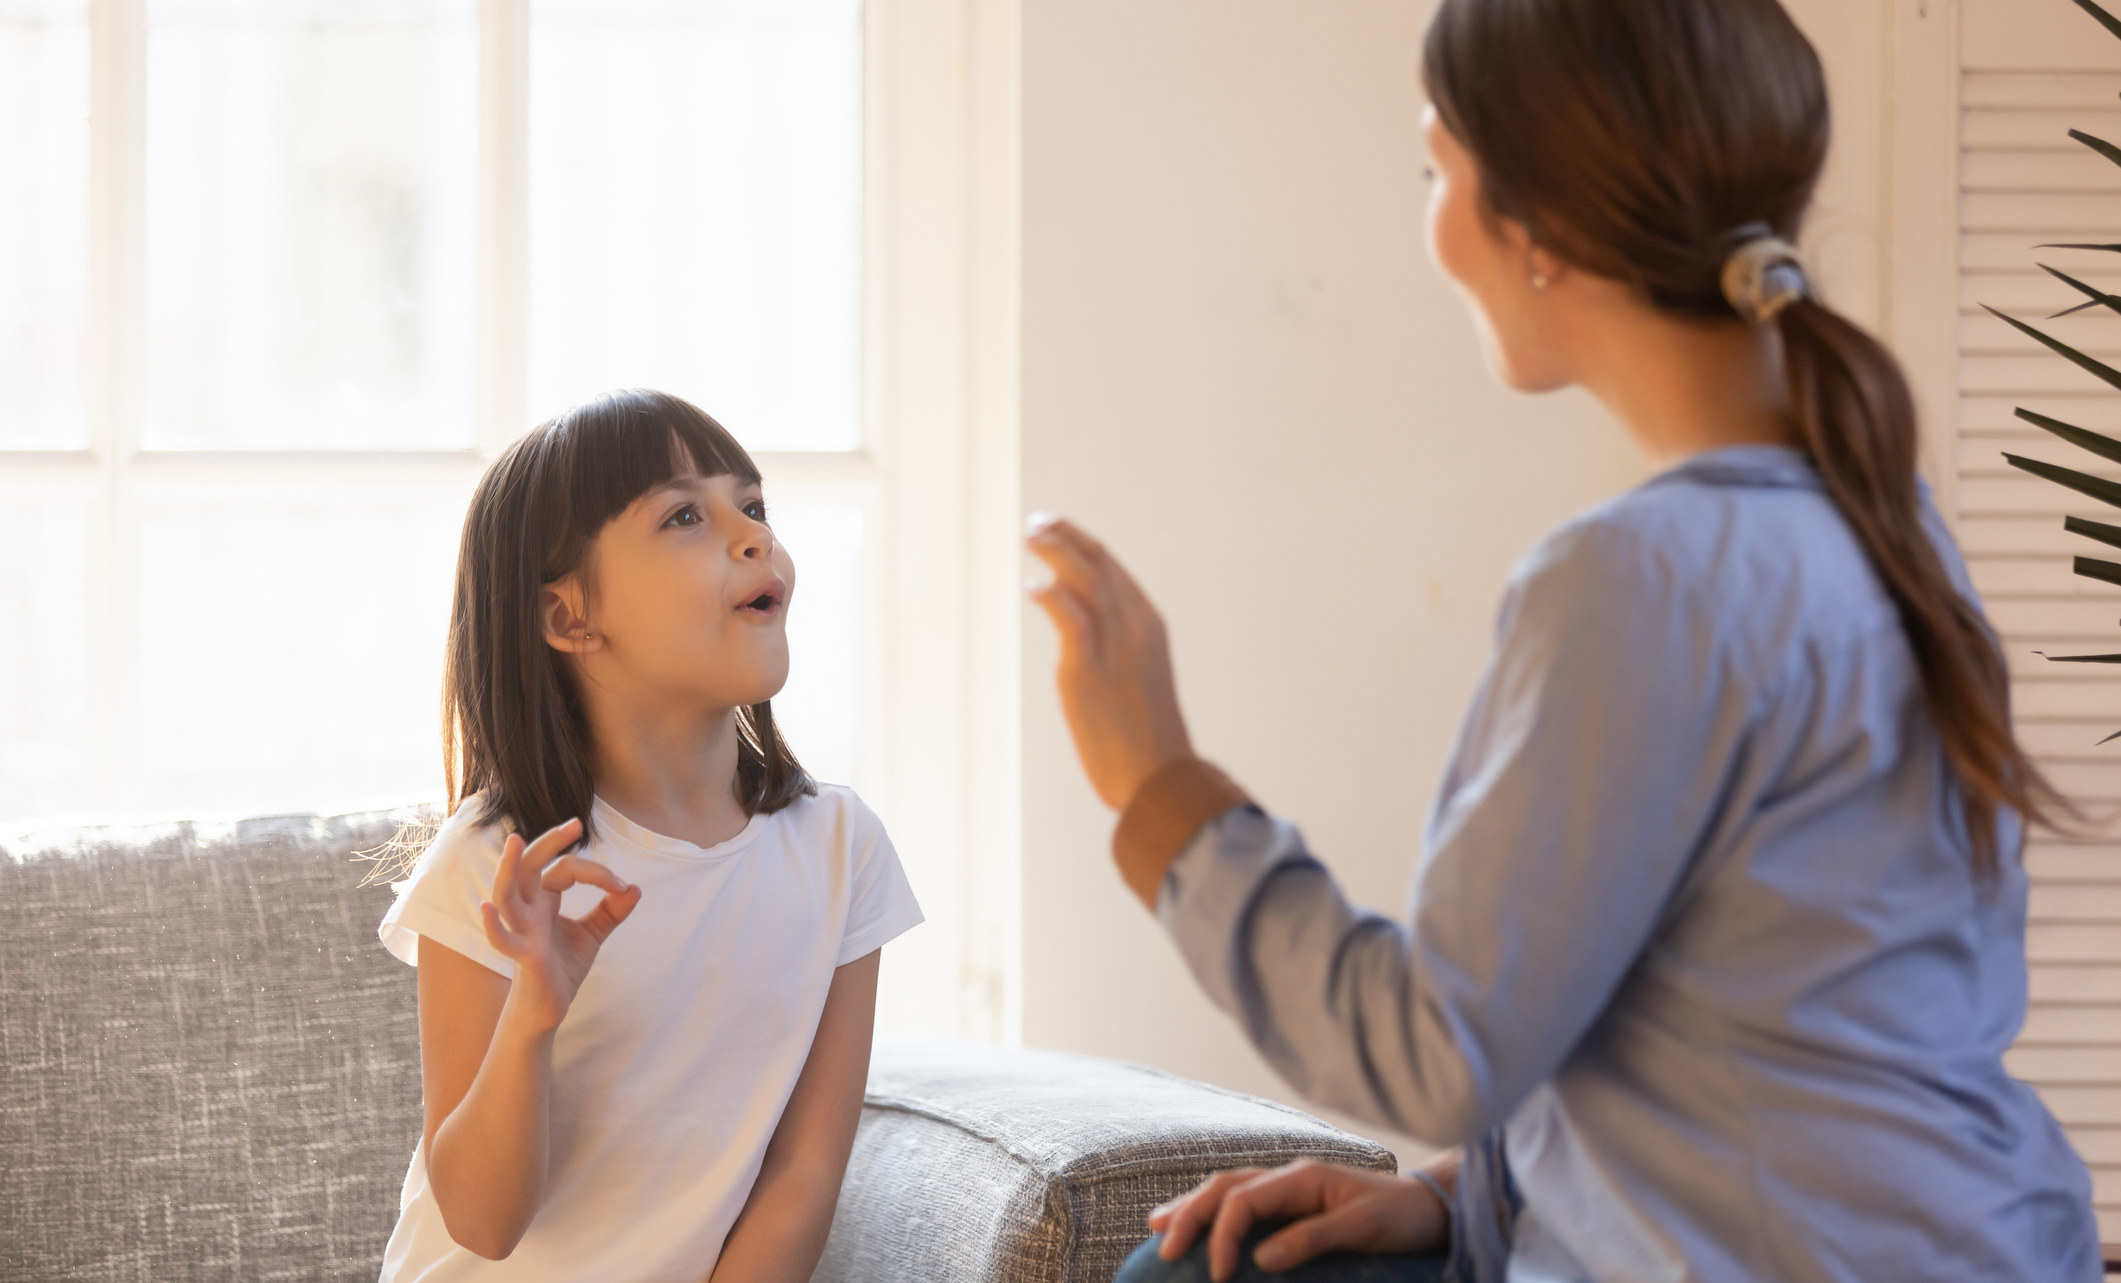 A woman teaching a young girl sign language.